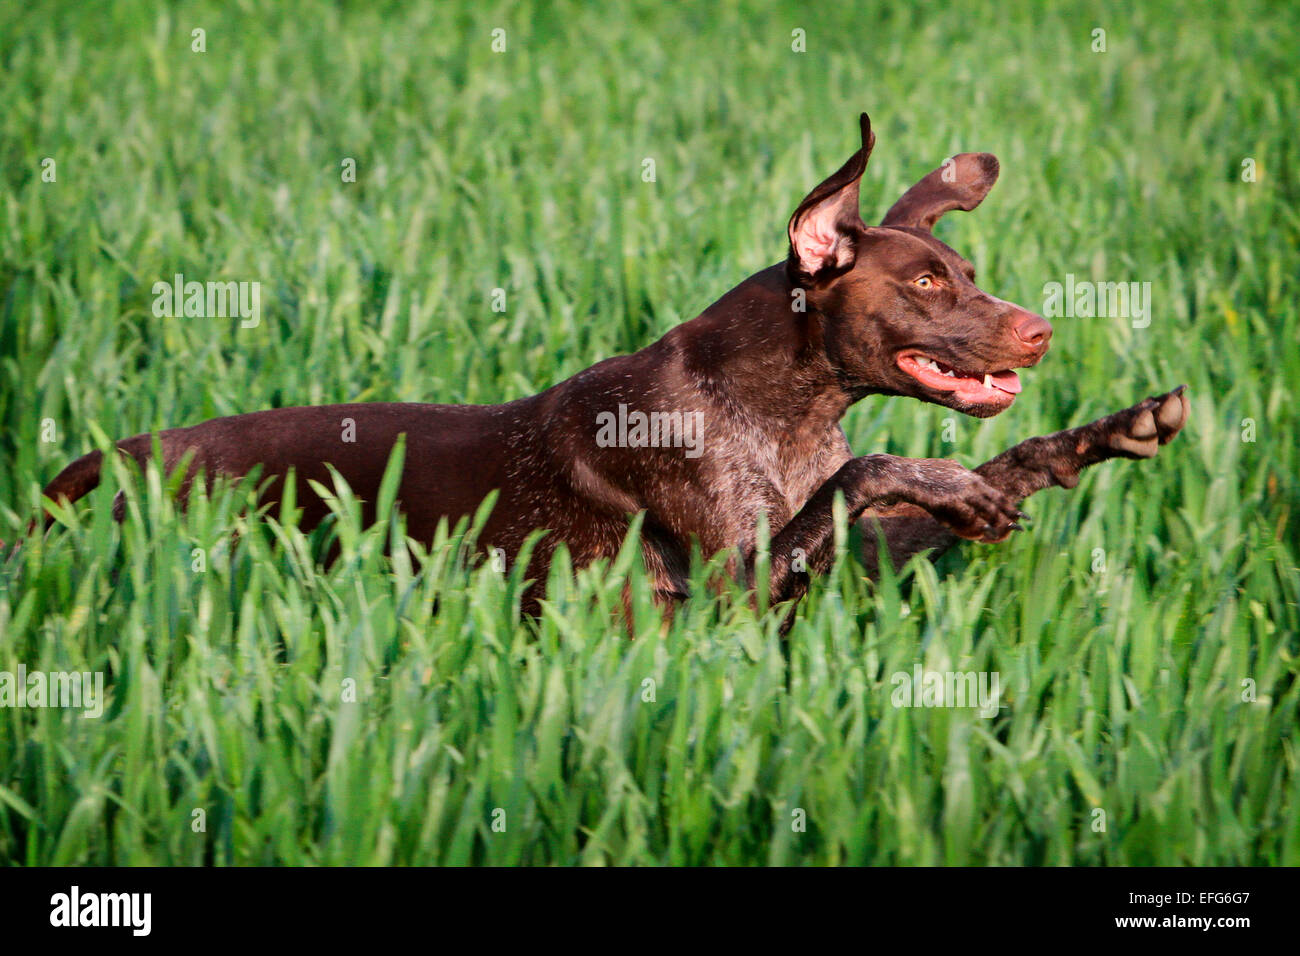 German pointer dog running and leaping through wheat field - Stock Image